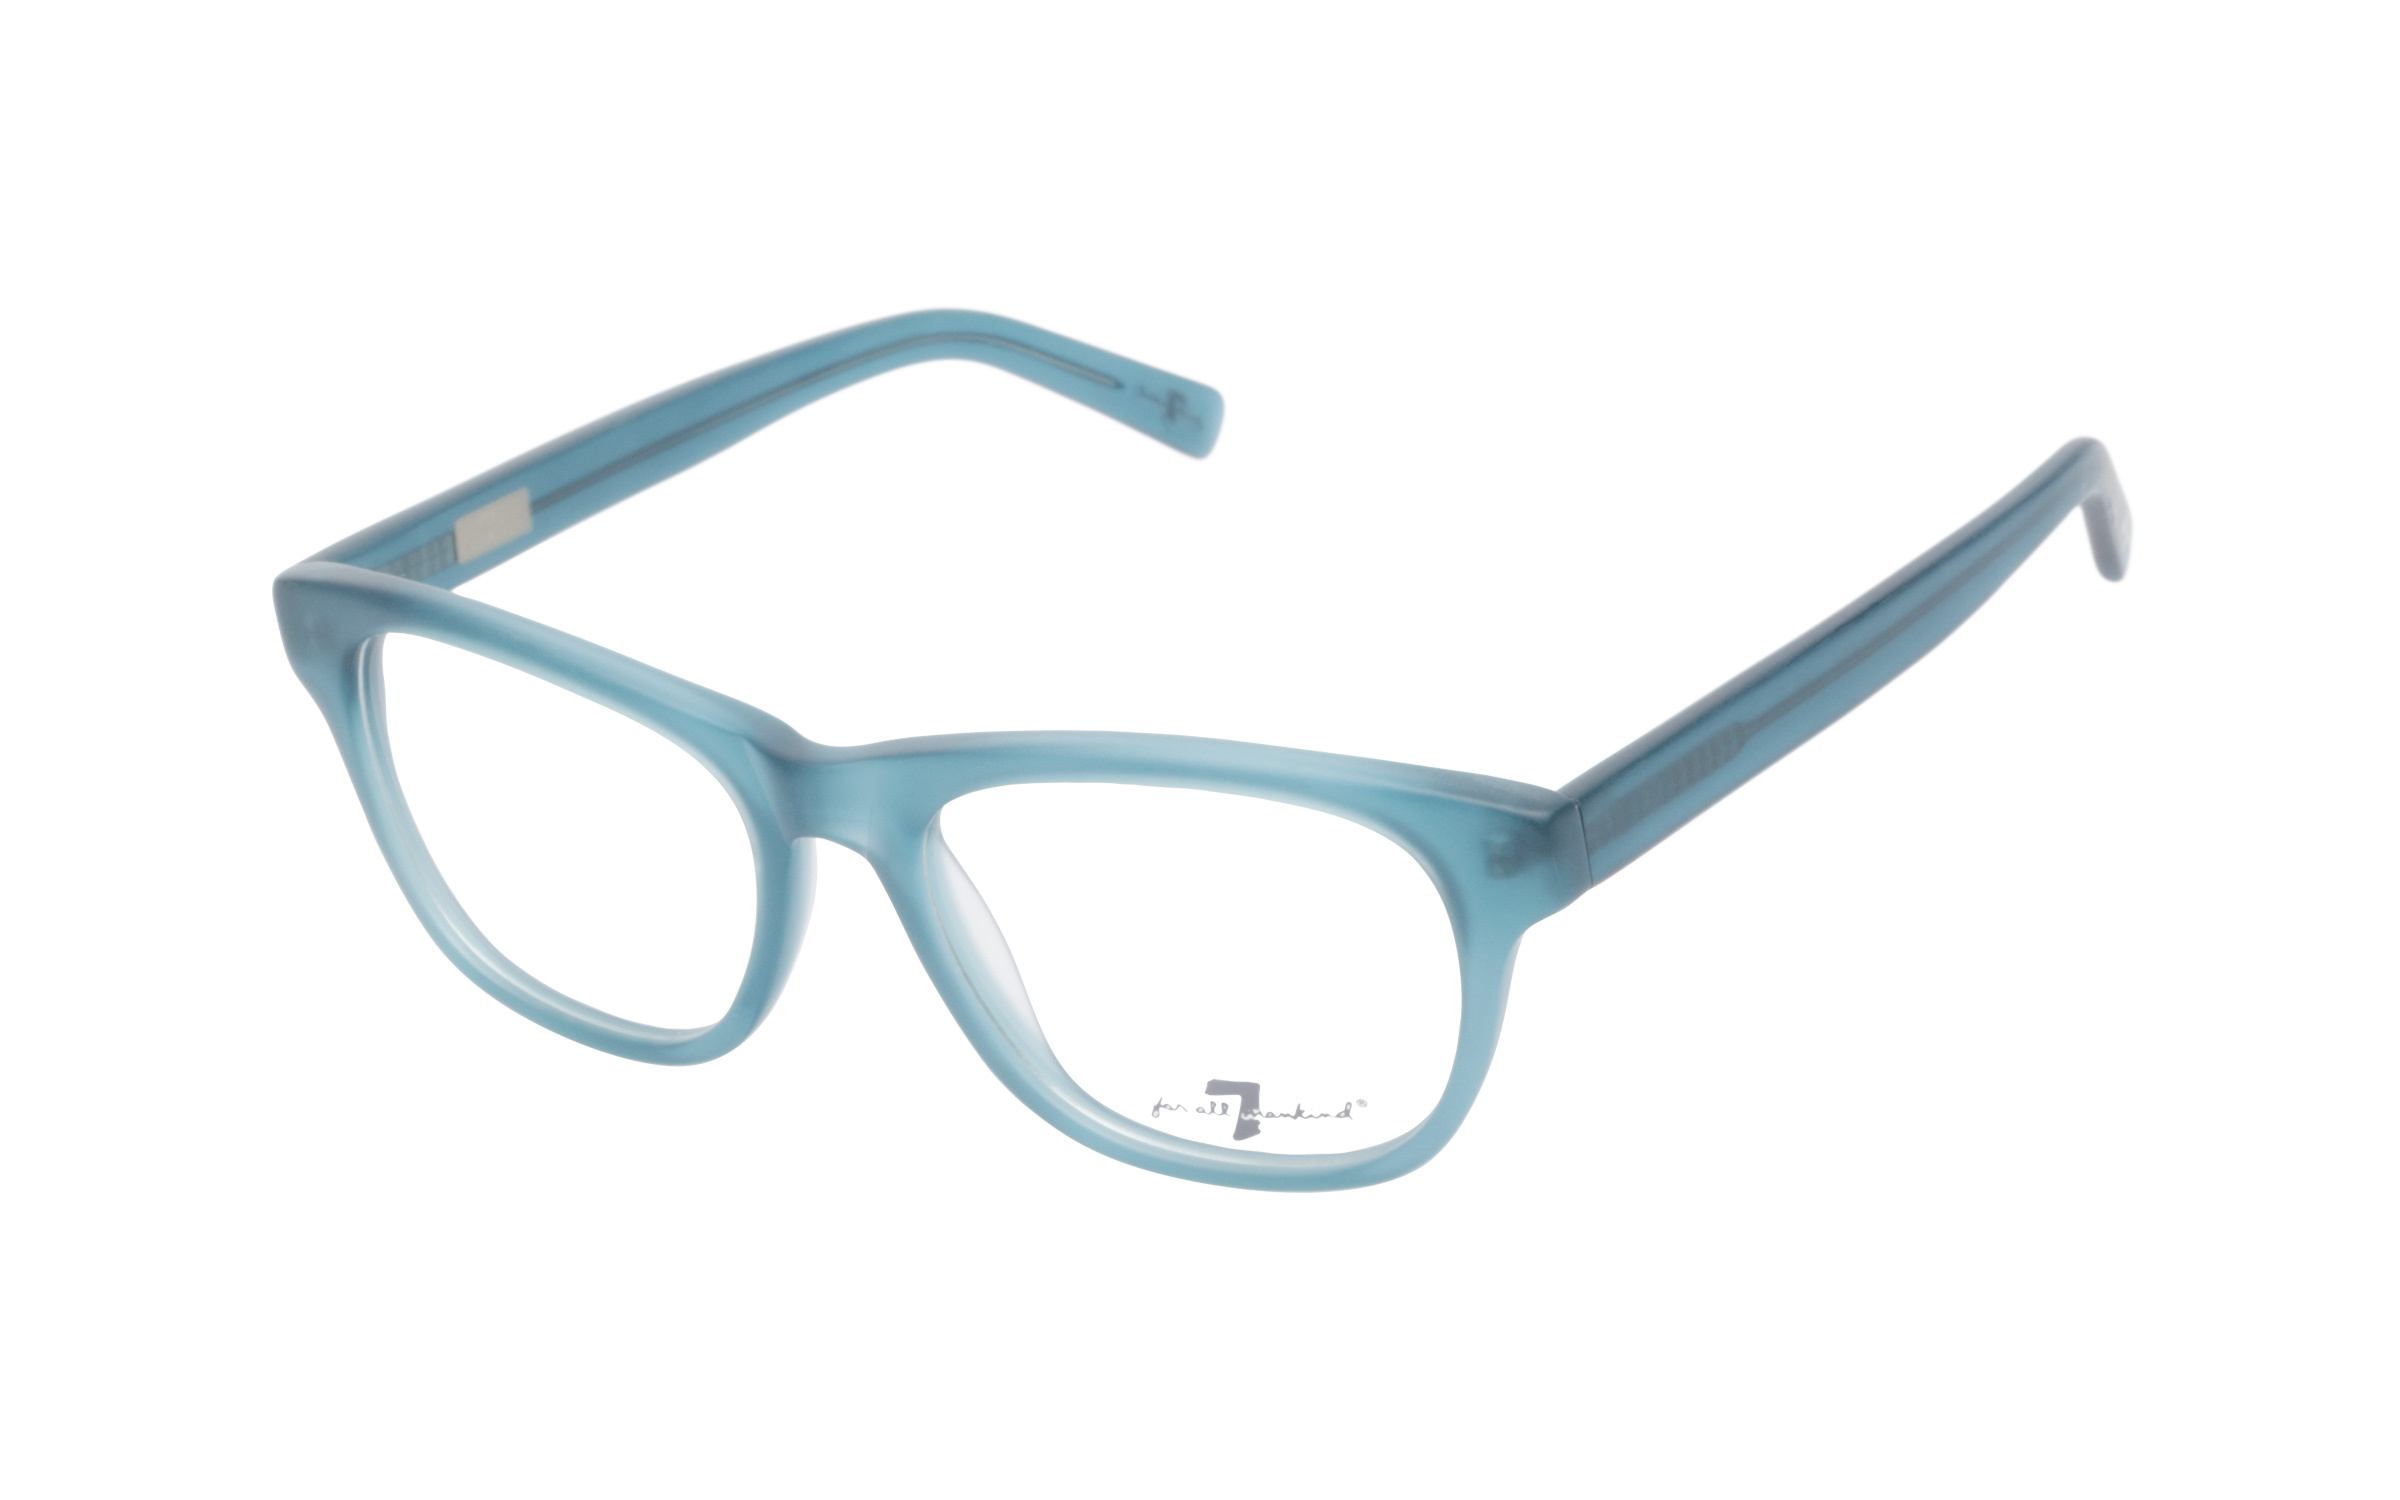 7 for All Mankind Women's Glasses Cat-Eye Blue Acetate Online Clearly